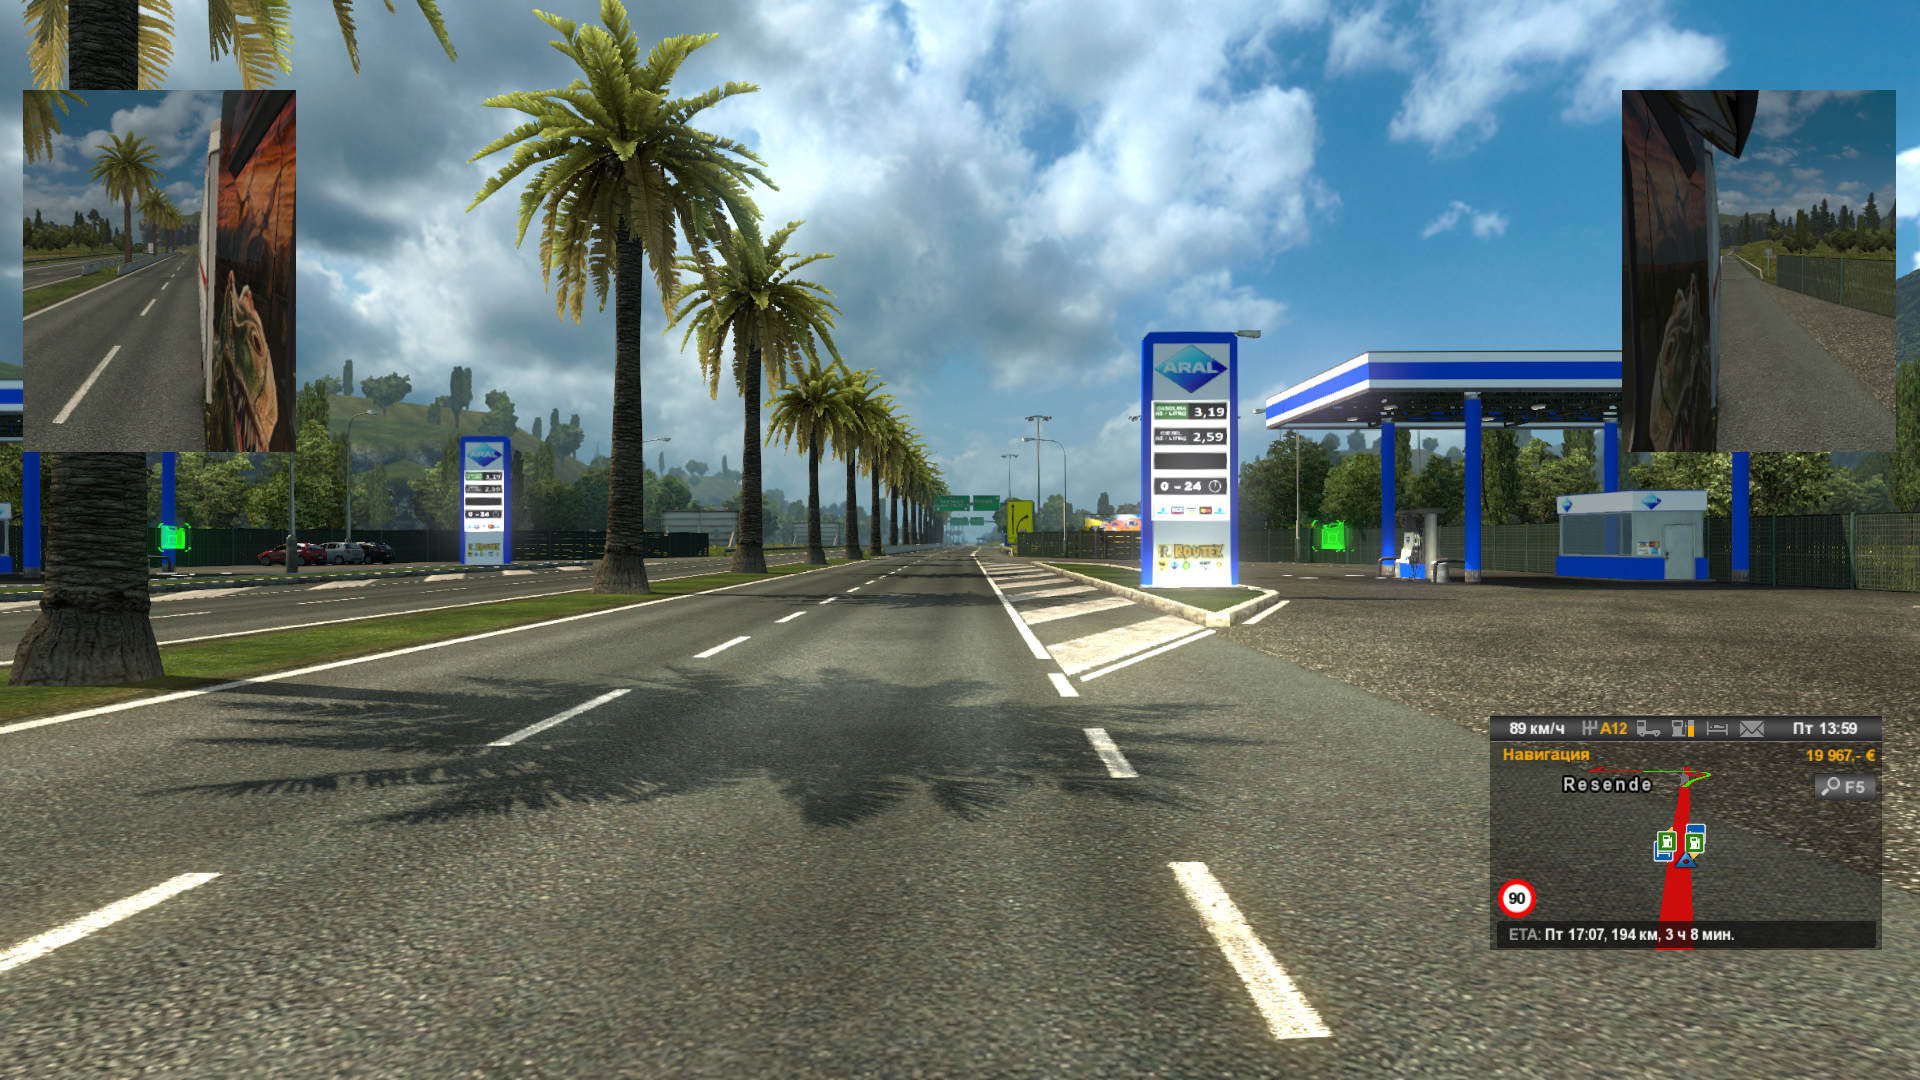 ets2_00029.png - -